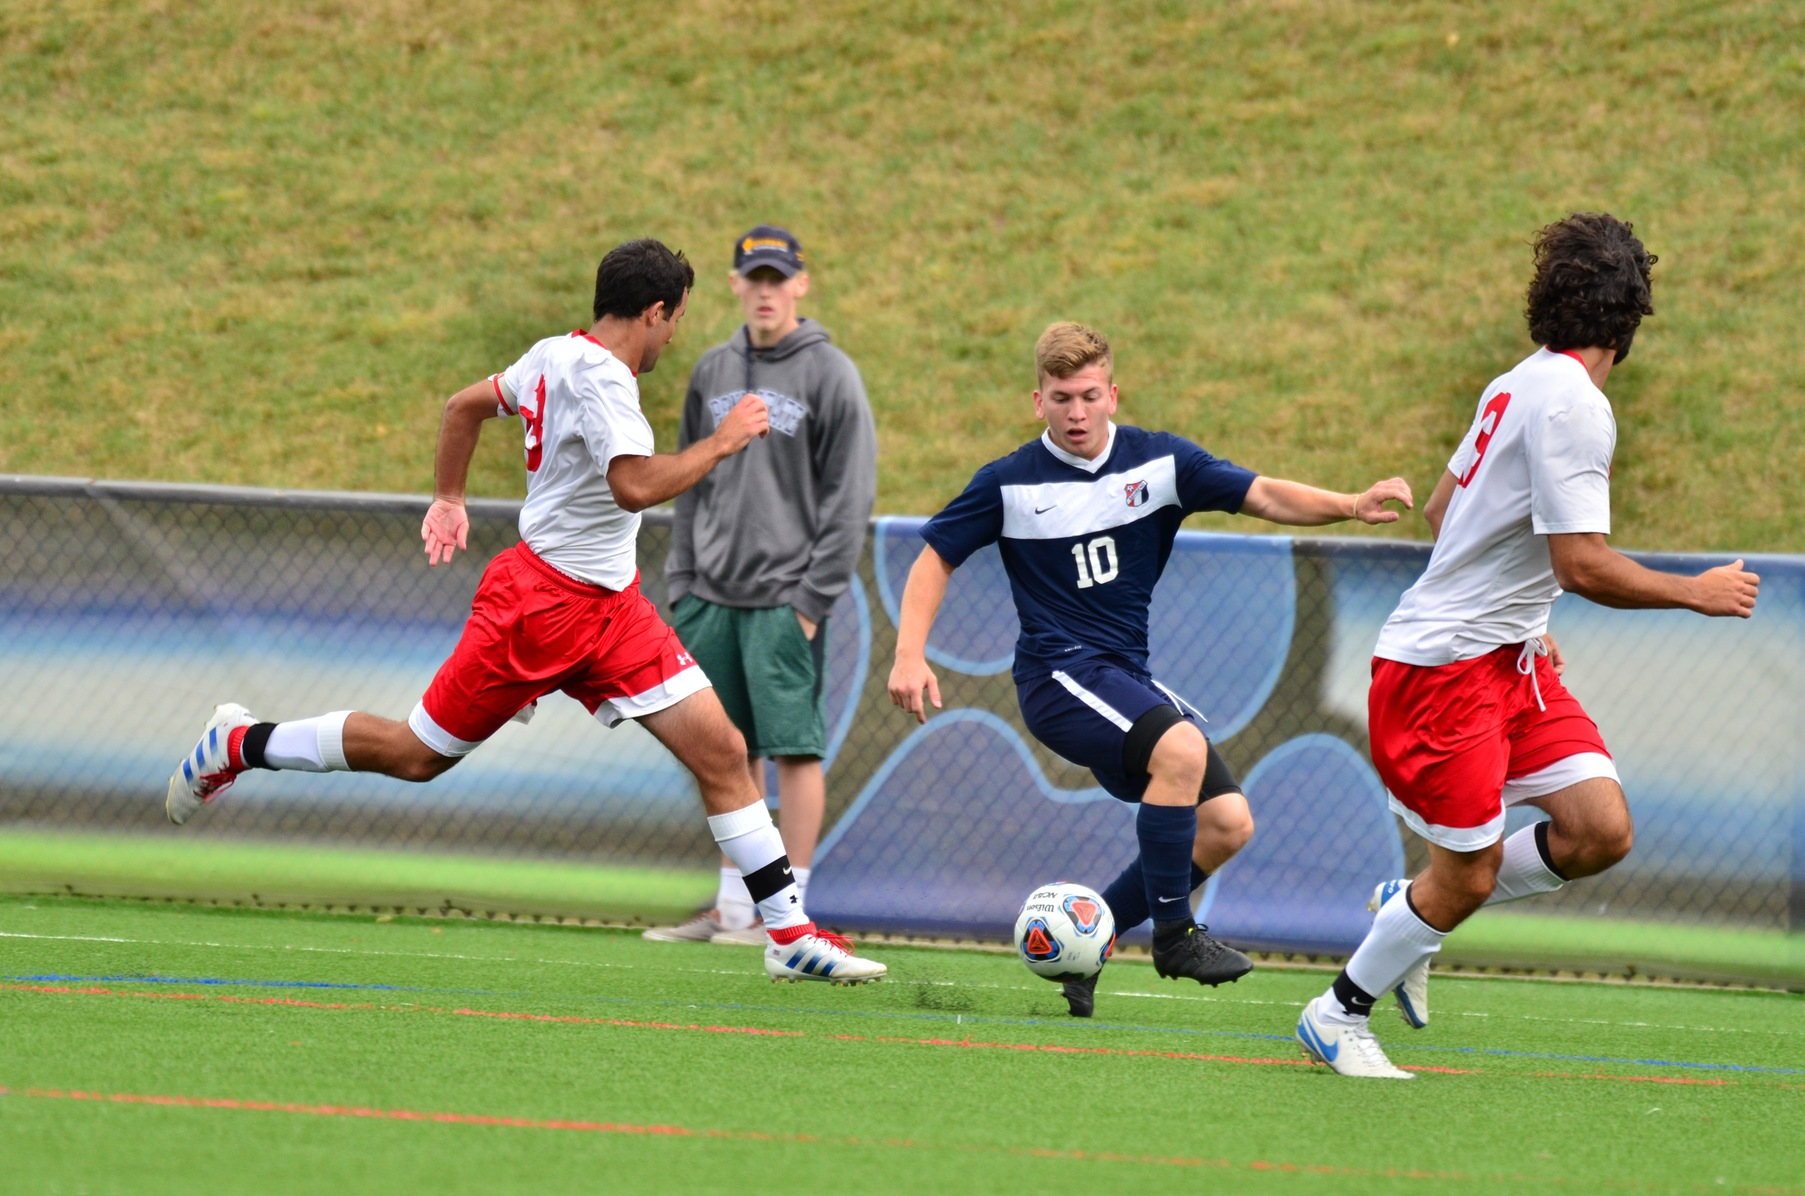 Bethany Converts PK to Defeat Behrend